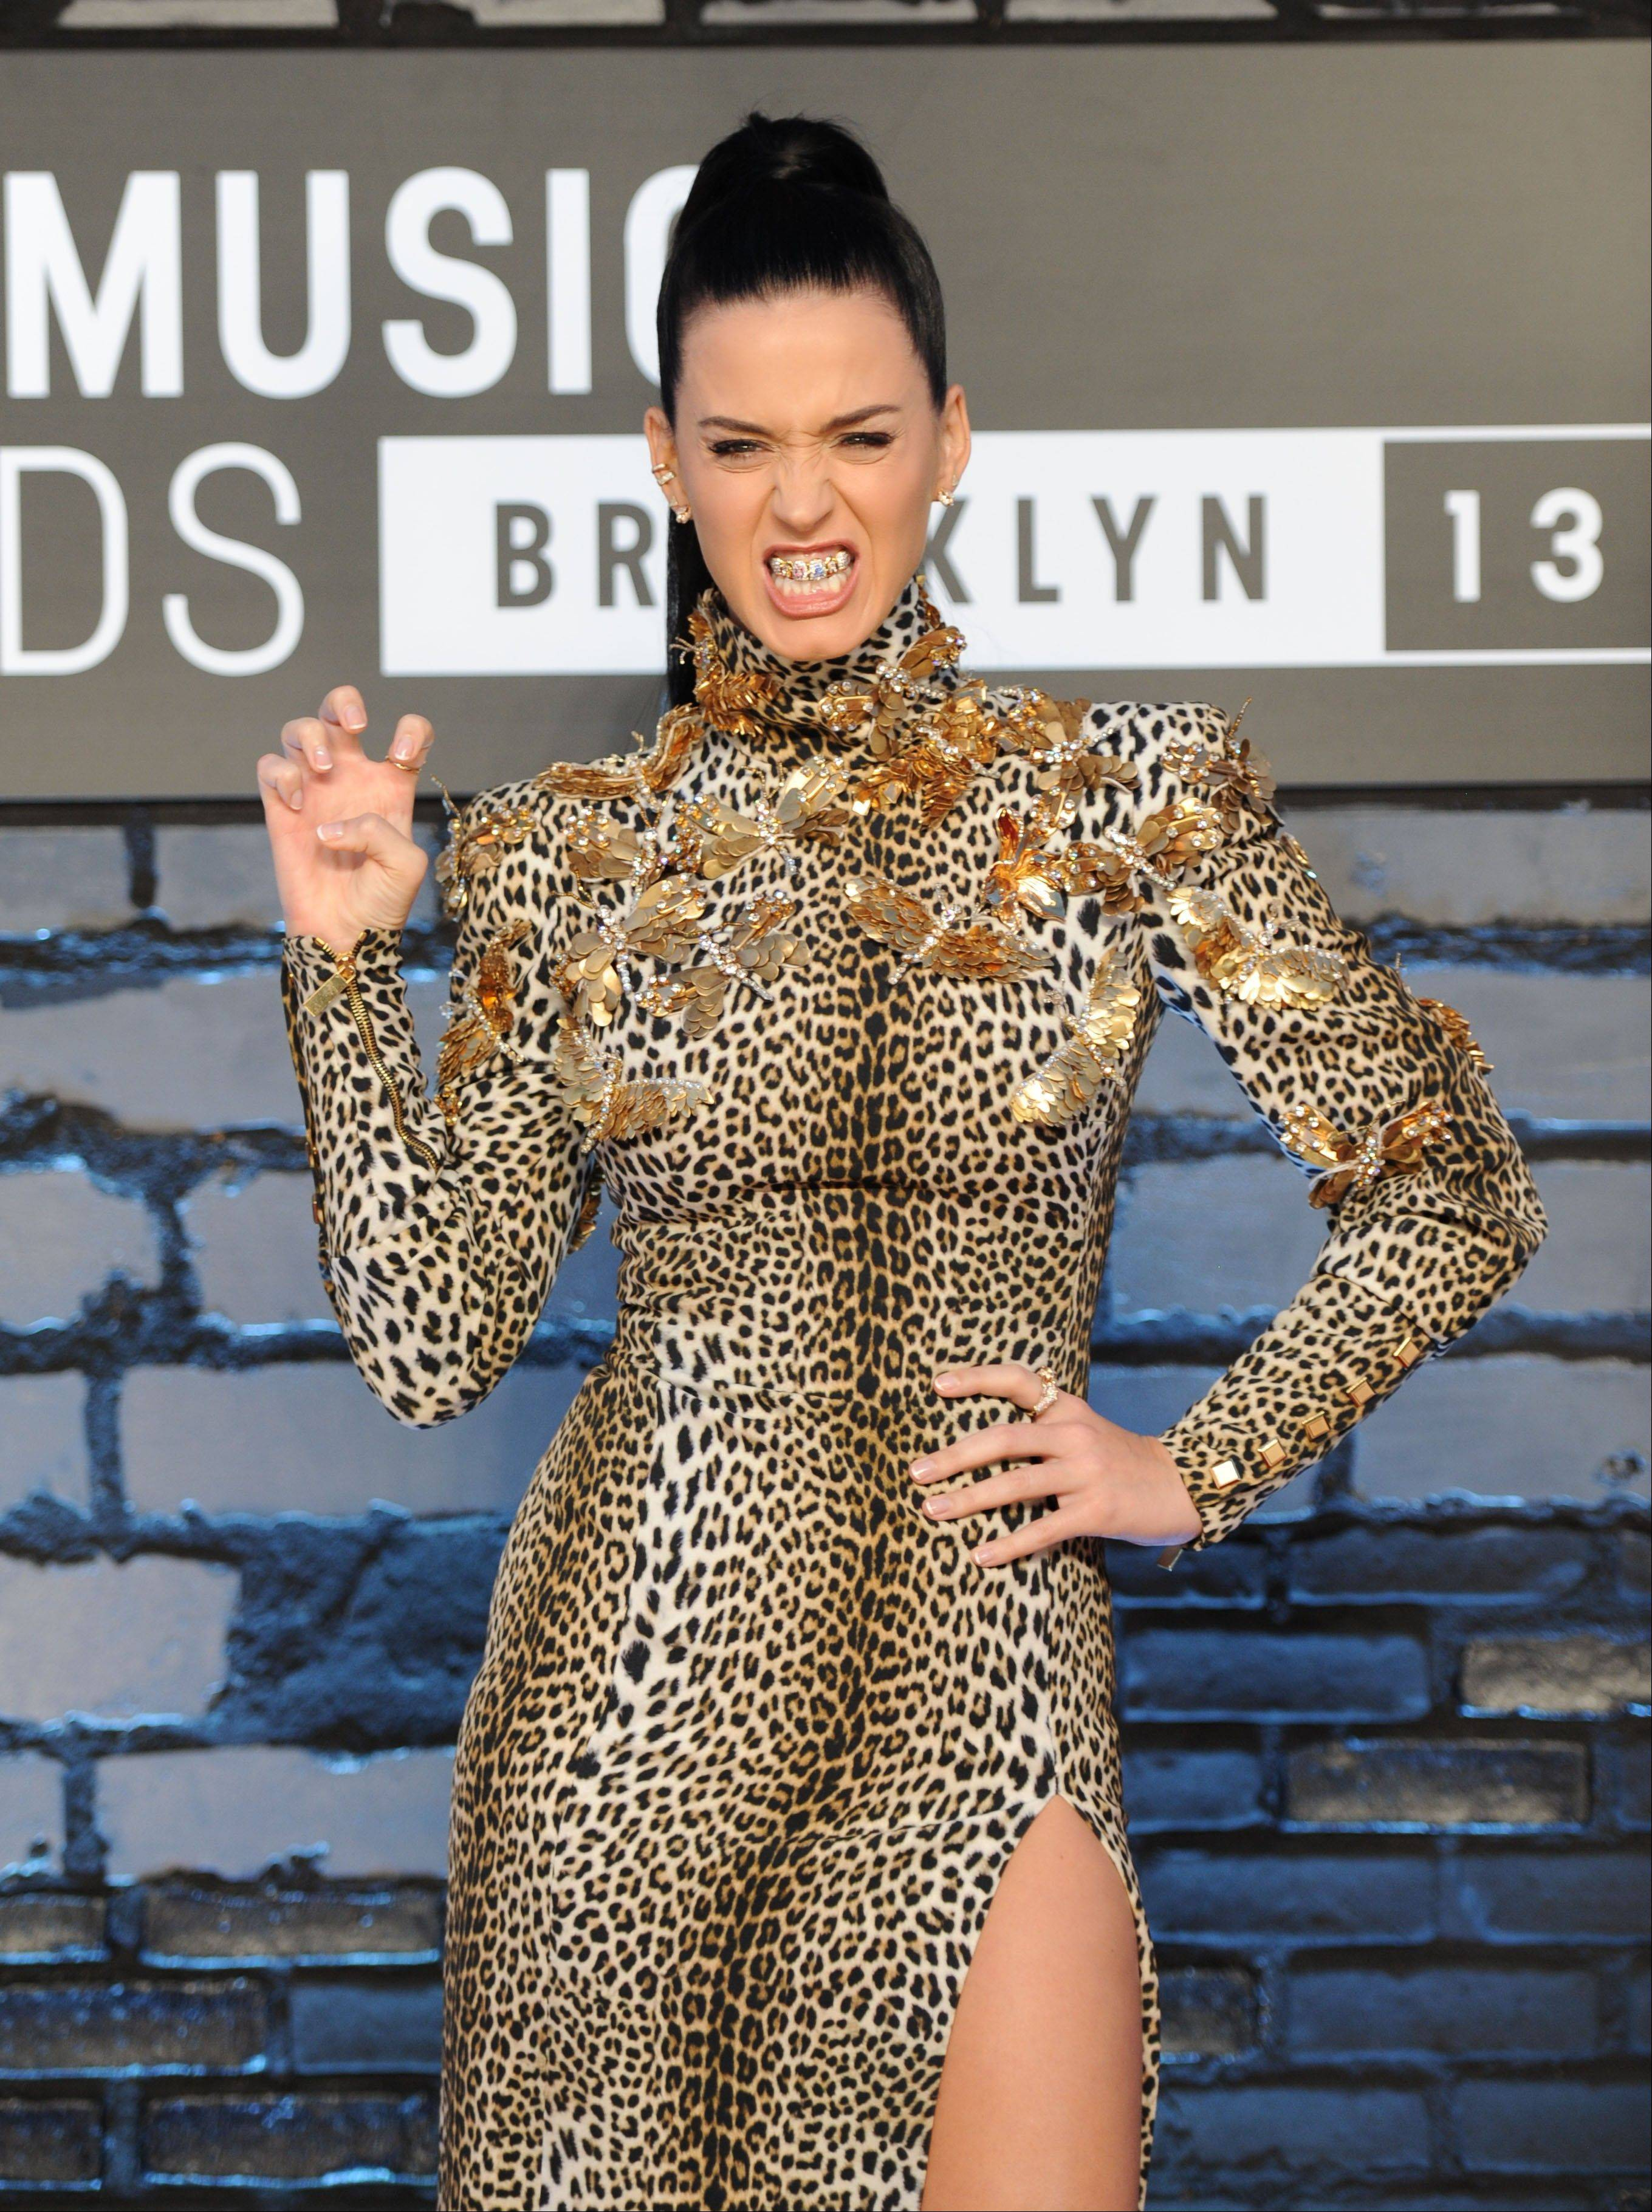 Katy Perry poses at the MTV Video Music Awards on Sunday.